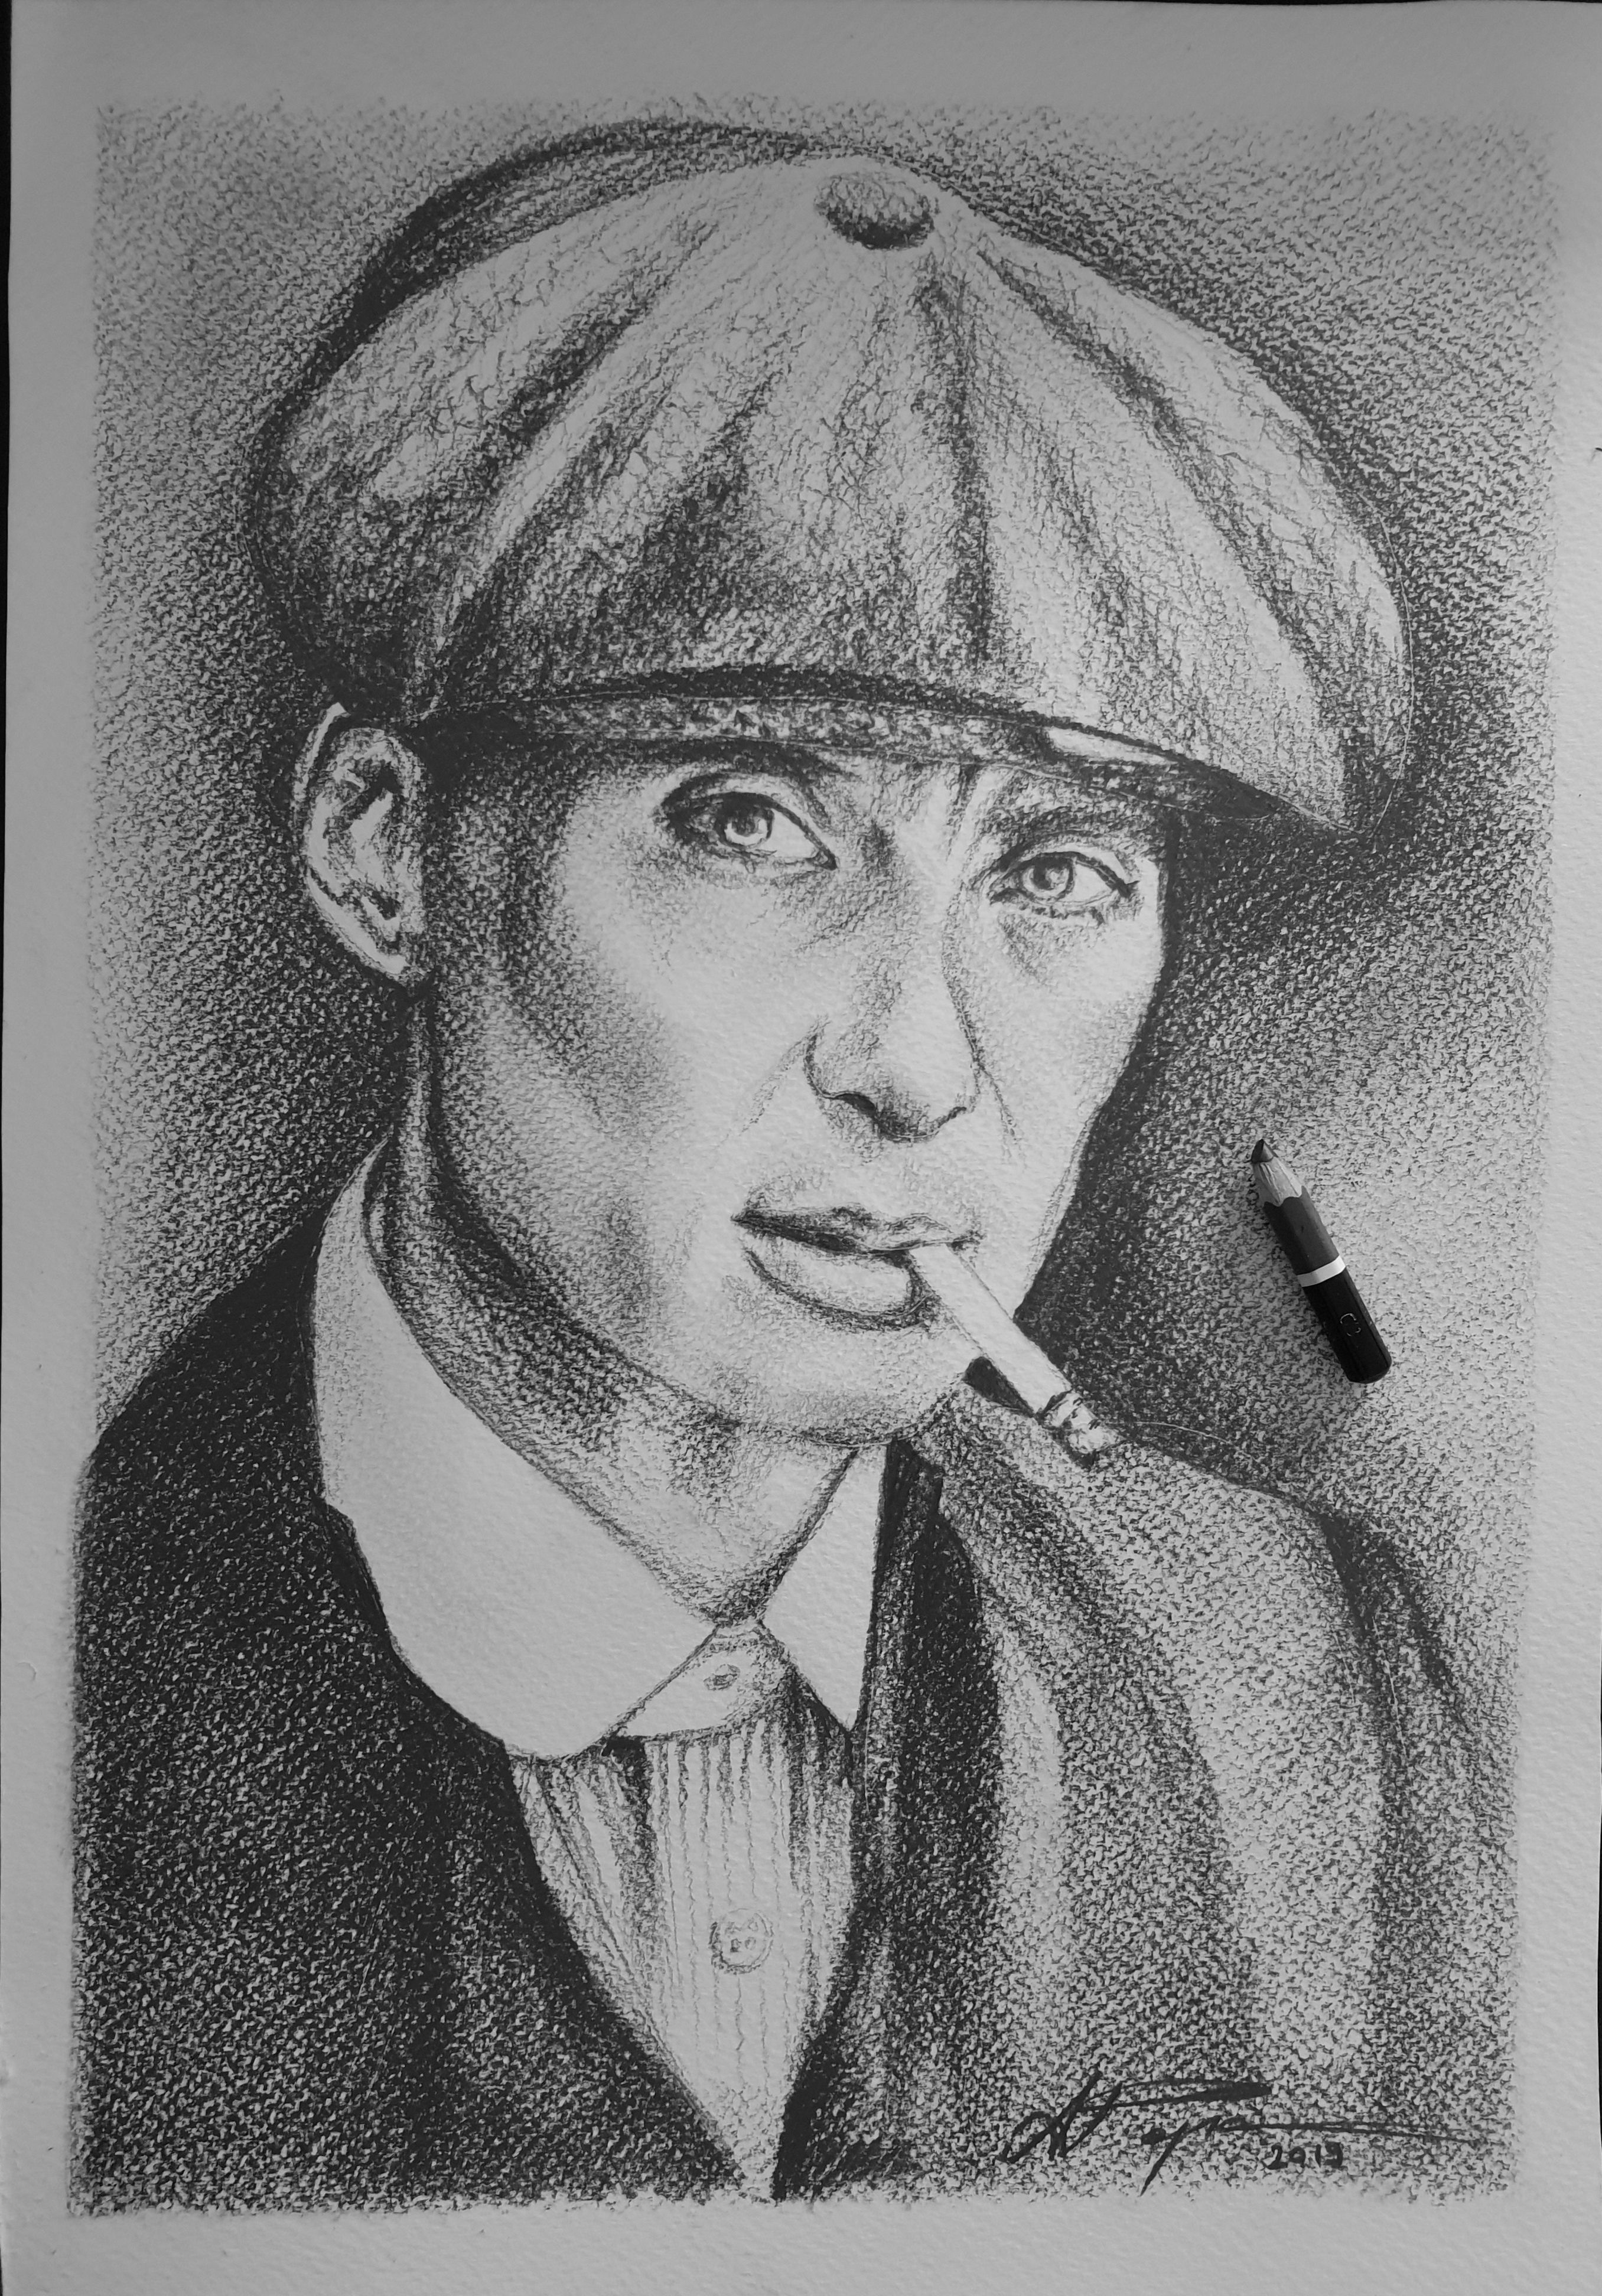 Peaky Blinders Tommy Shelby Original Drawing Peaky Blinders Tommy Shelby Peaky Blinders Peaky Blinders Poster